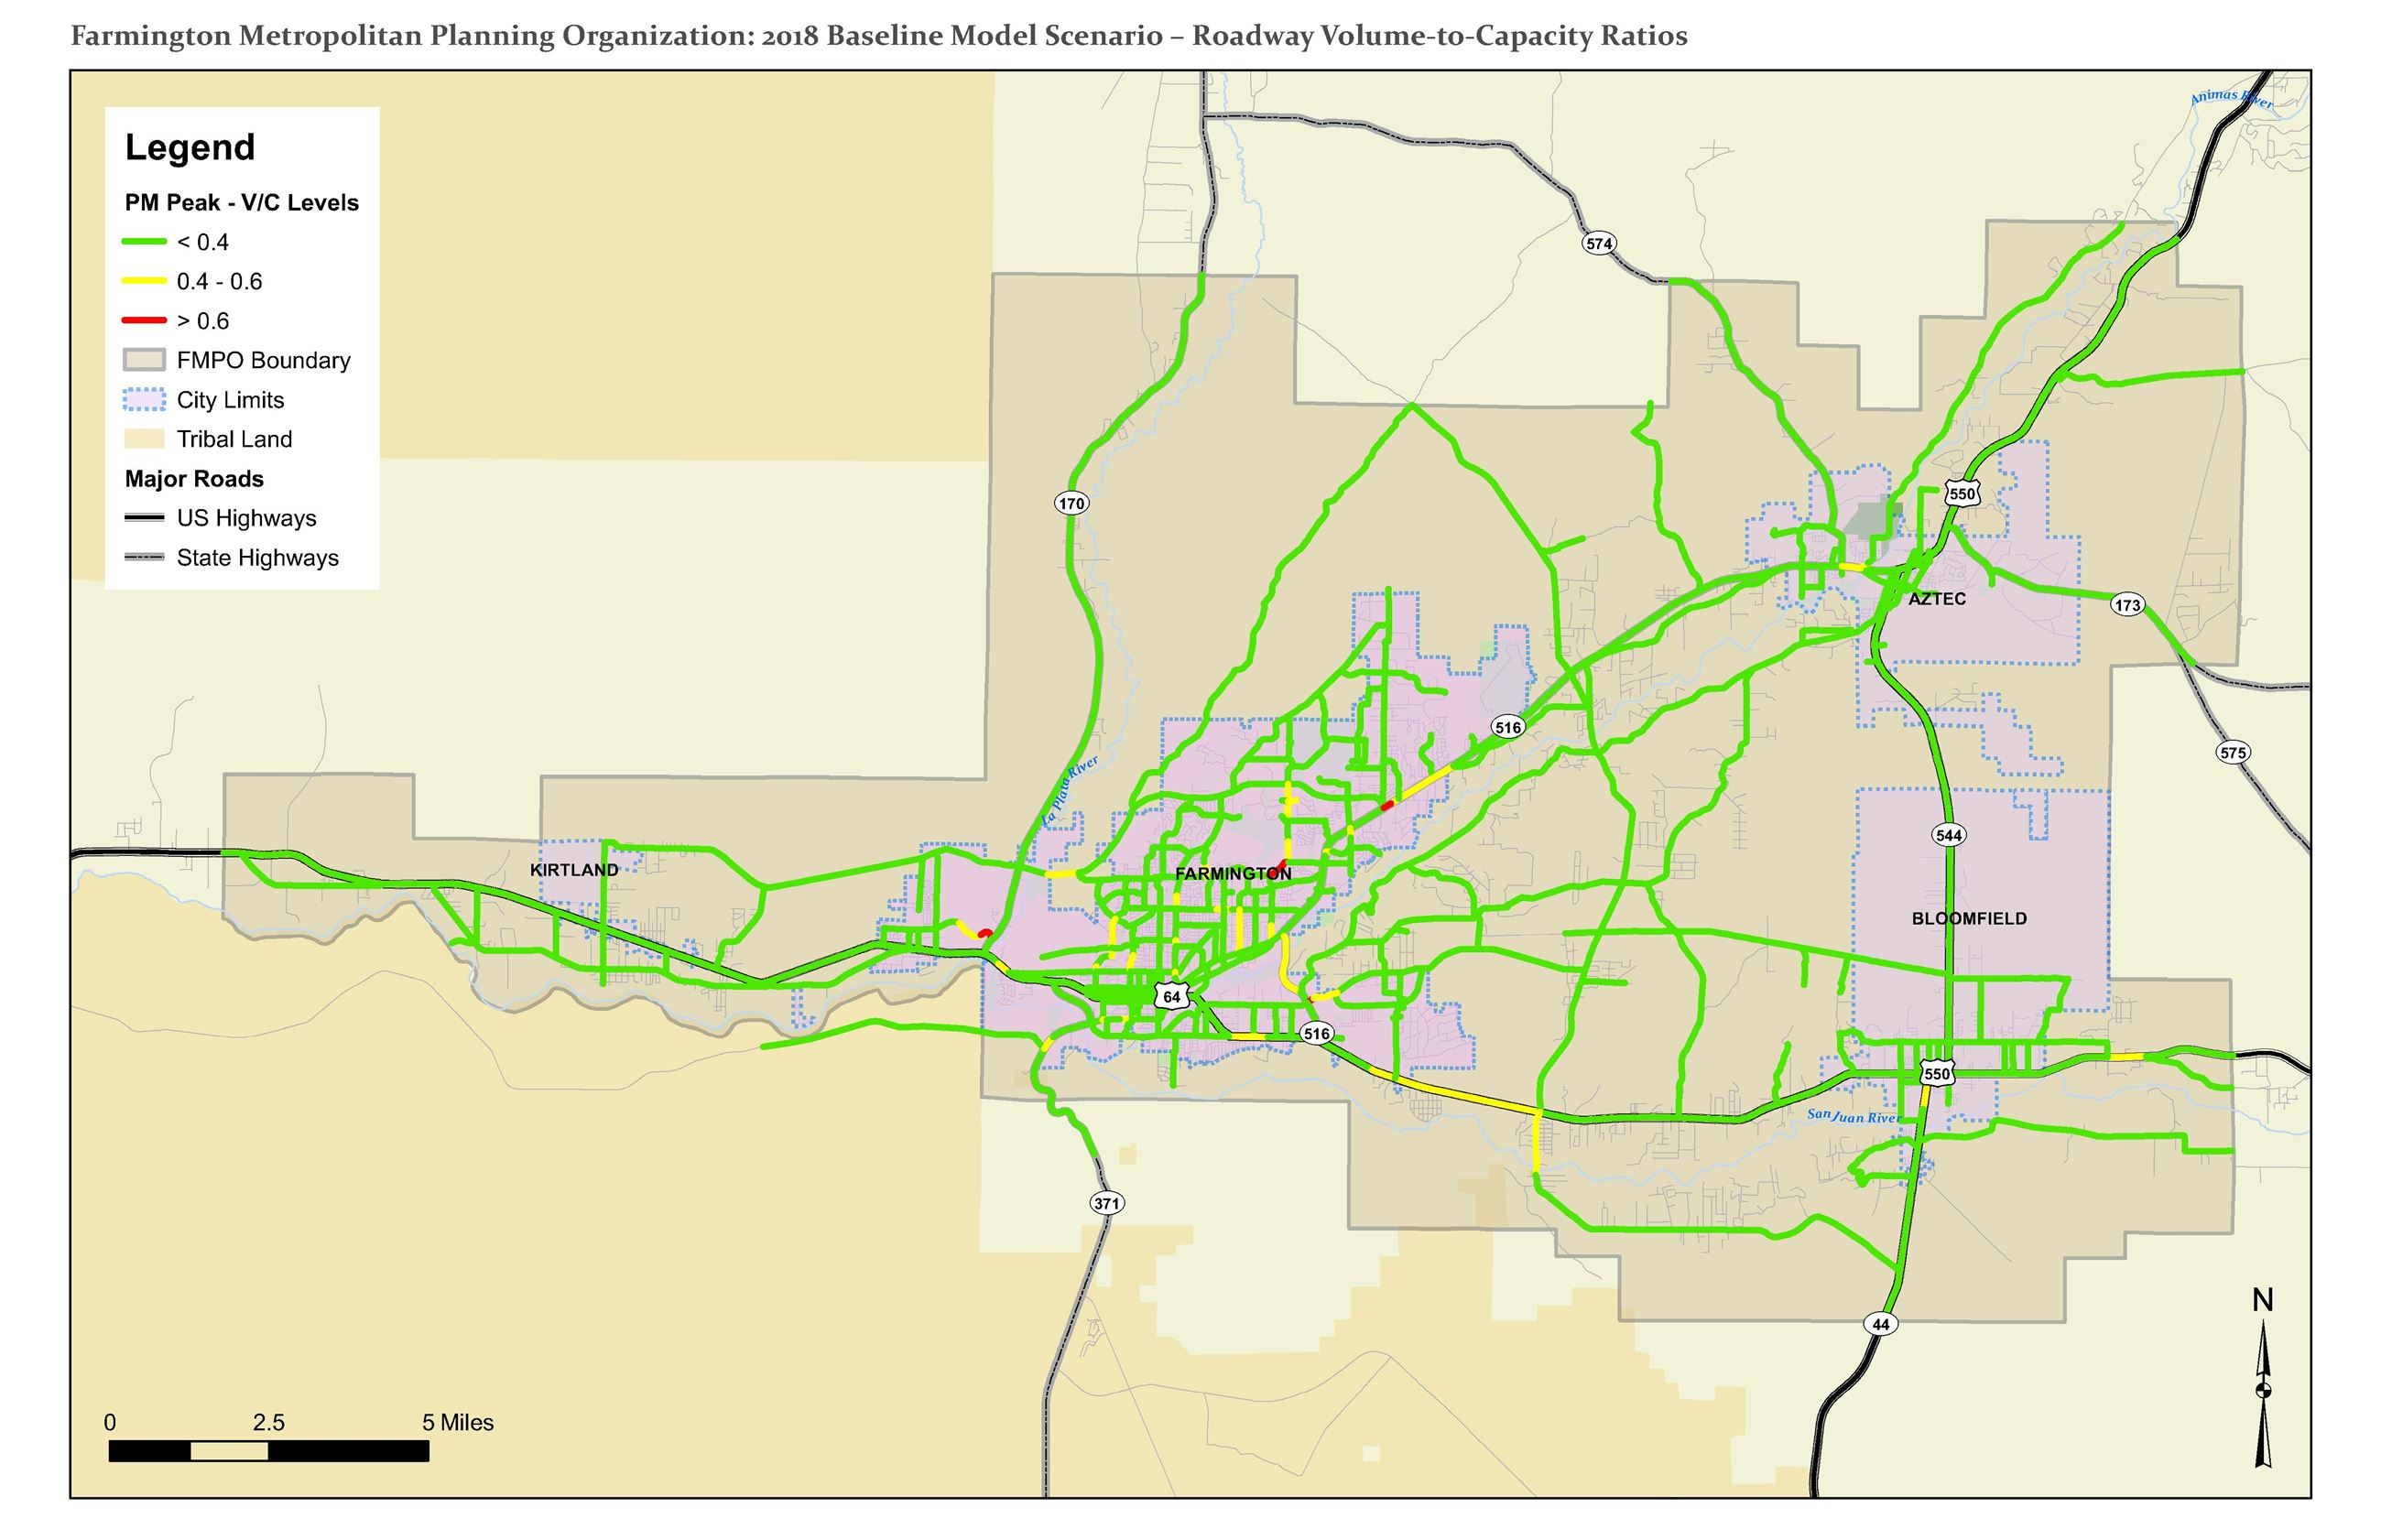 Map - 2018 Baseline Model Scenario - Roadway Volume-to-Capacity Ratios Opens in new window